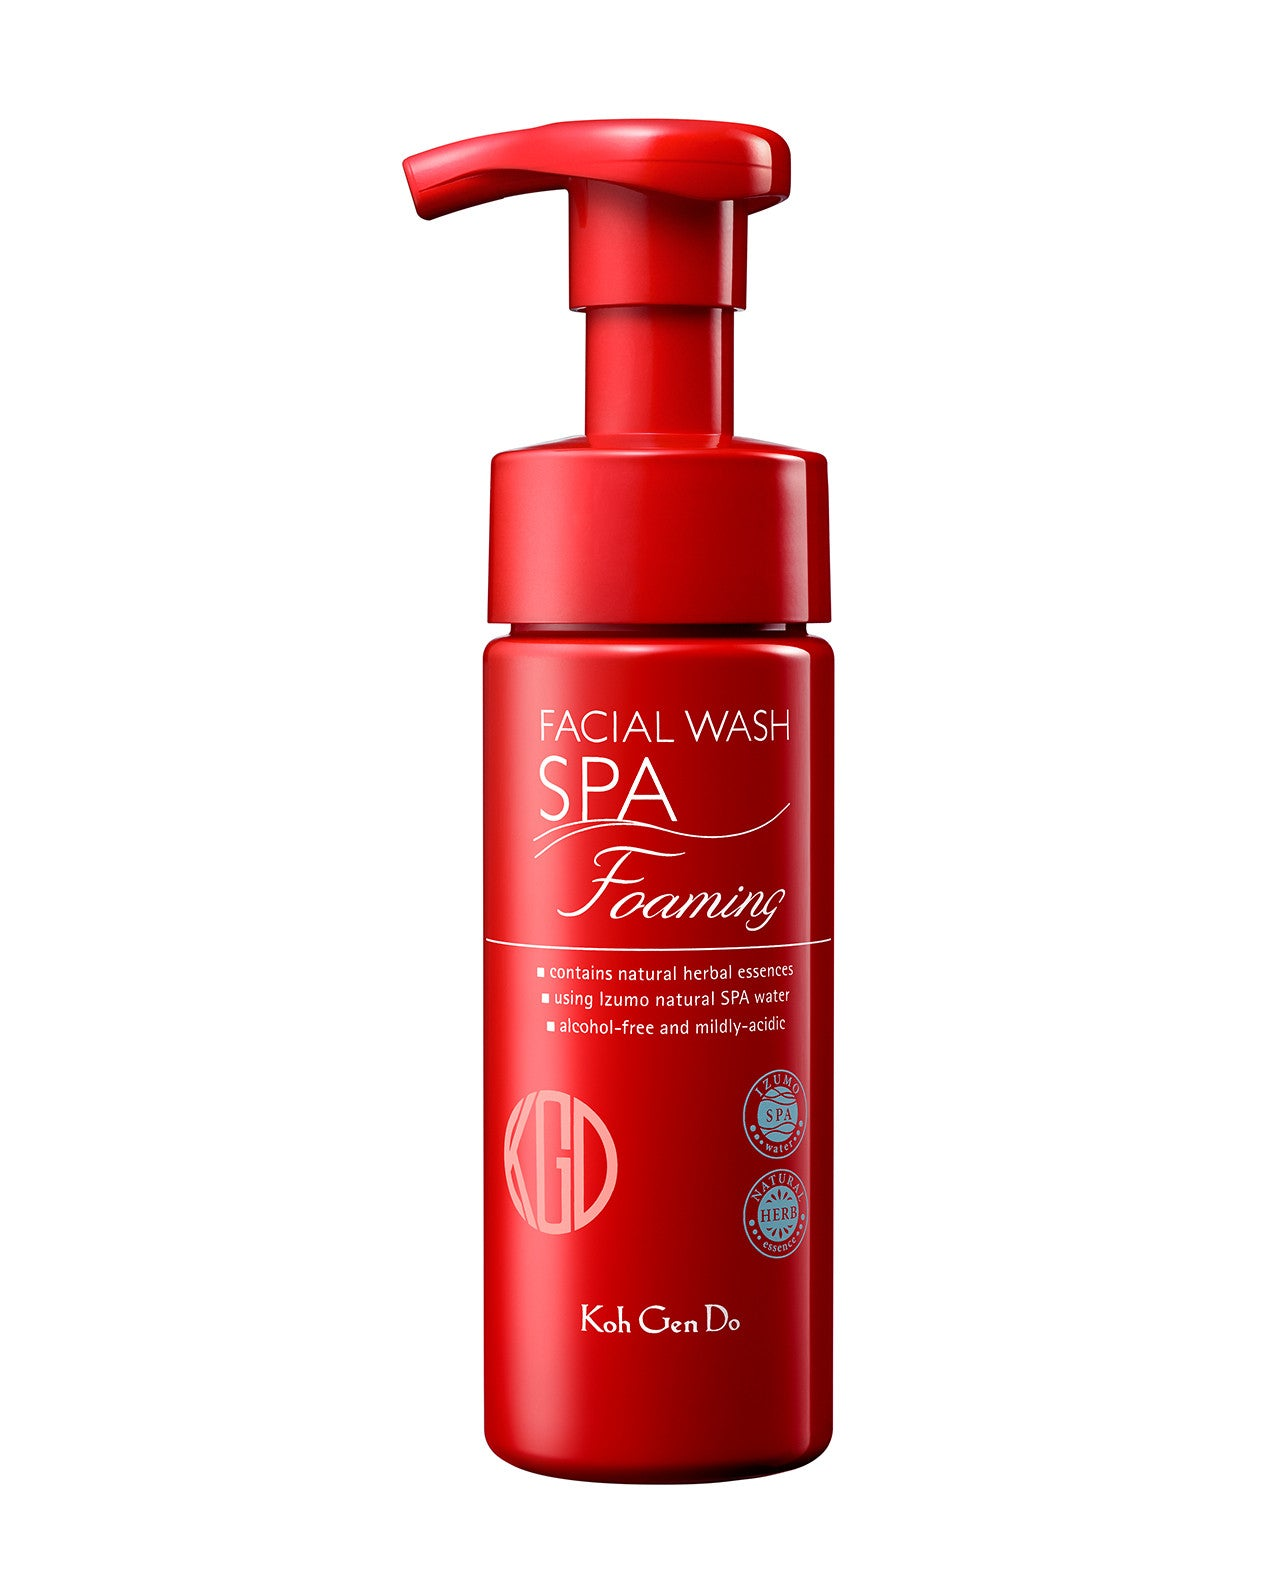 This luxurious cleansing foam enriched with our signature SPA Water gently purifies pores while protecting skin moisture and elasticity.